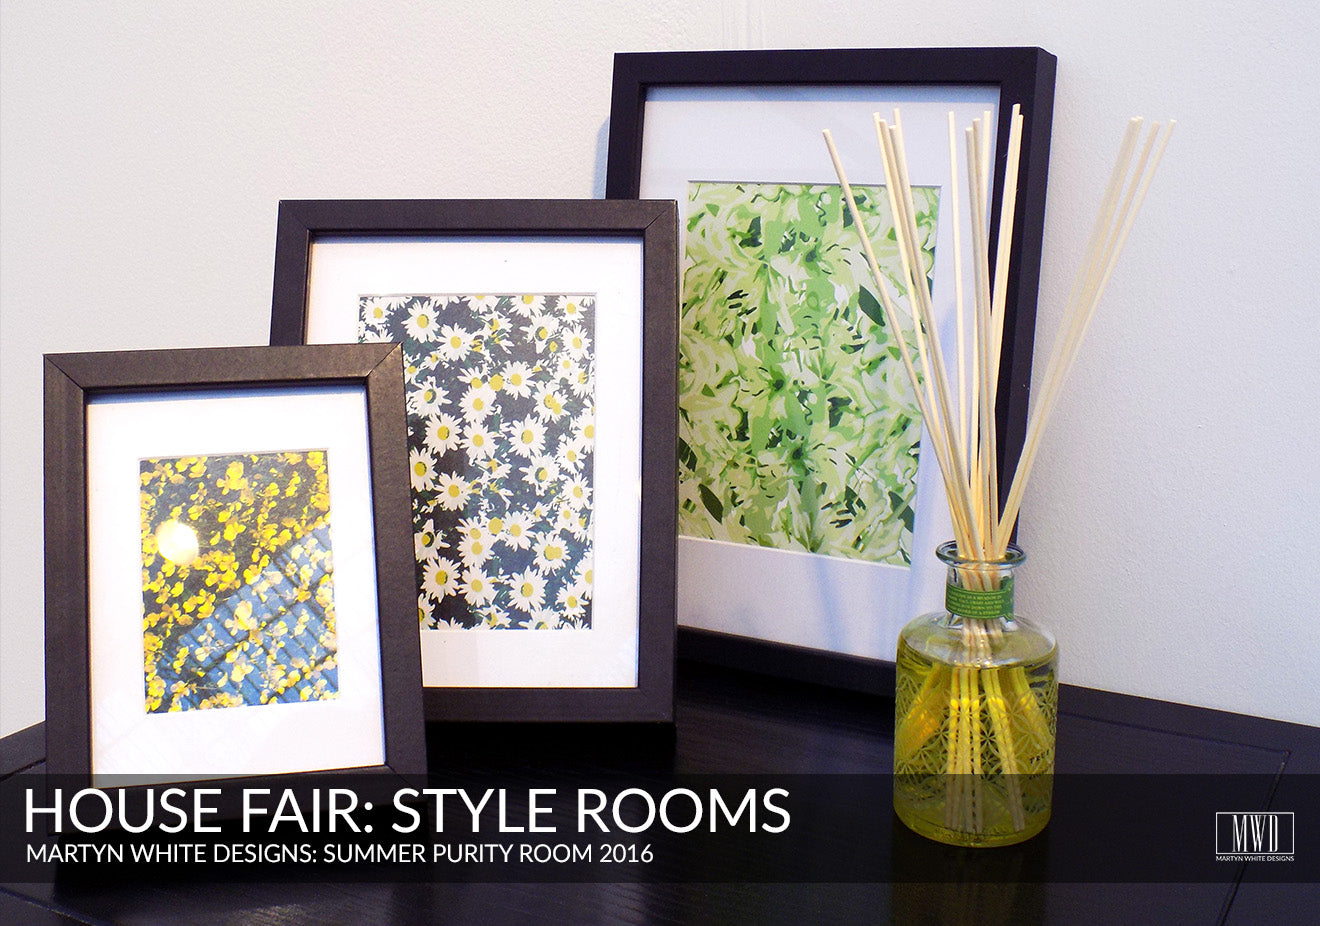 Modern floral art prints on display at the House Fair Style Rooms